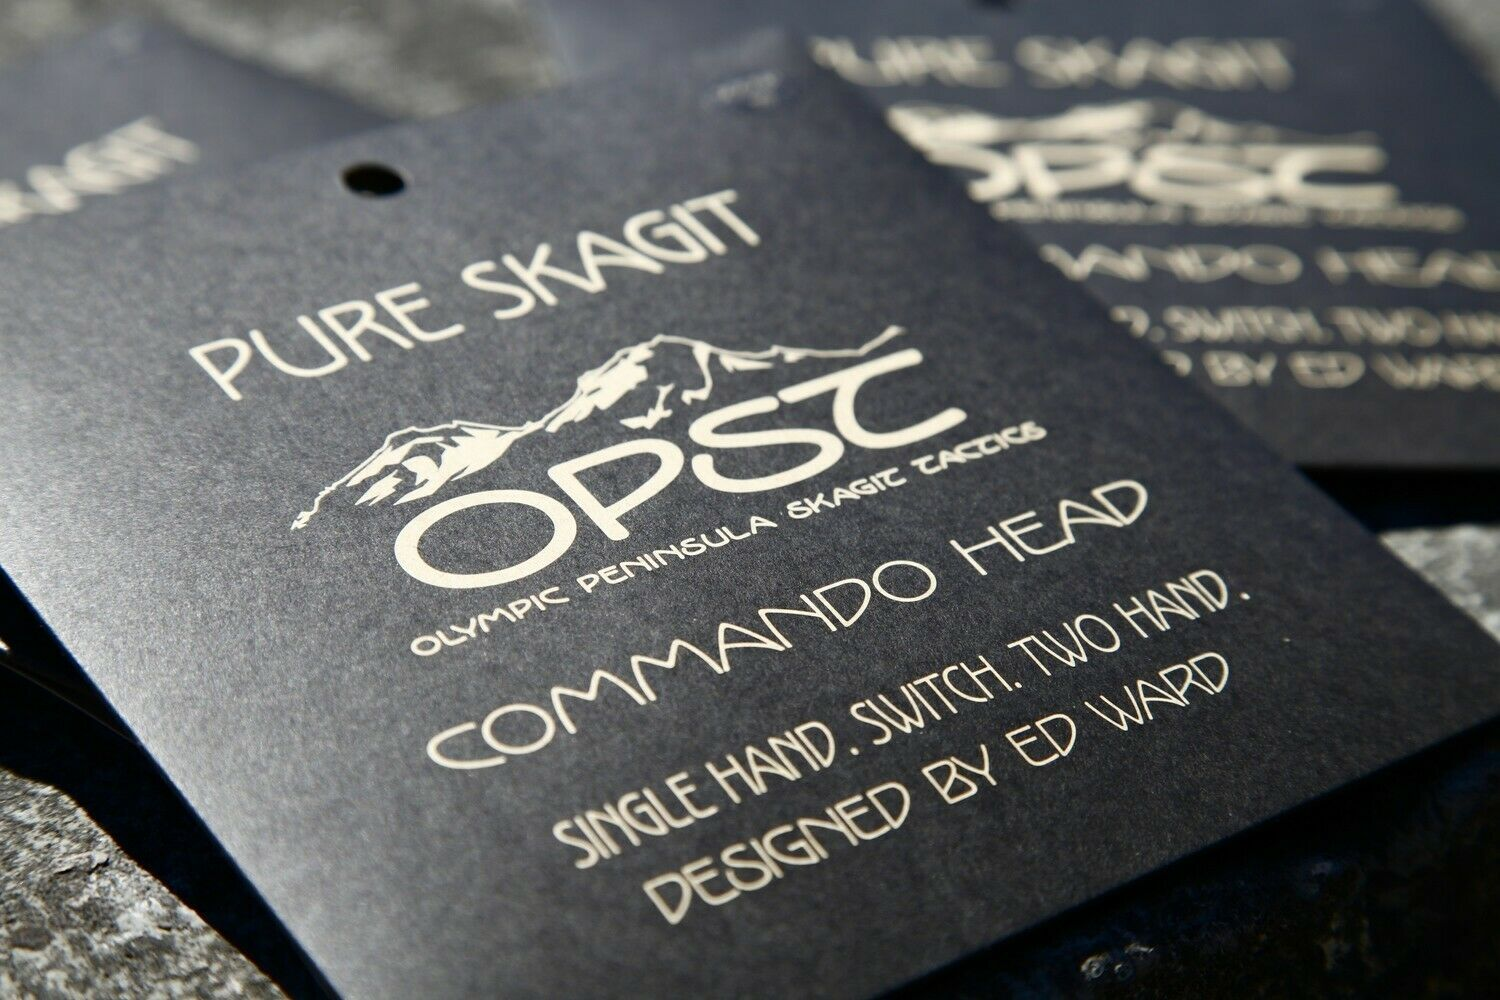 OPST Commando  Skagit Shooting Head - 400 Grain - Spey Fly Line - FREE SHIPPING   free delivery